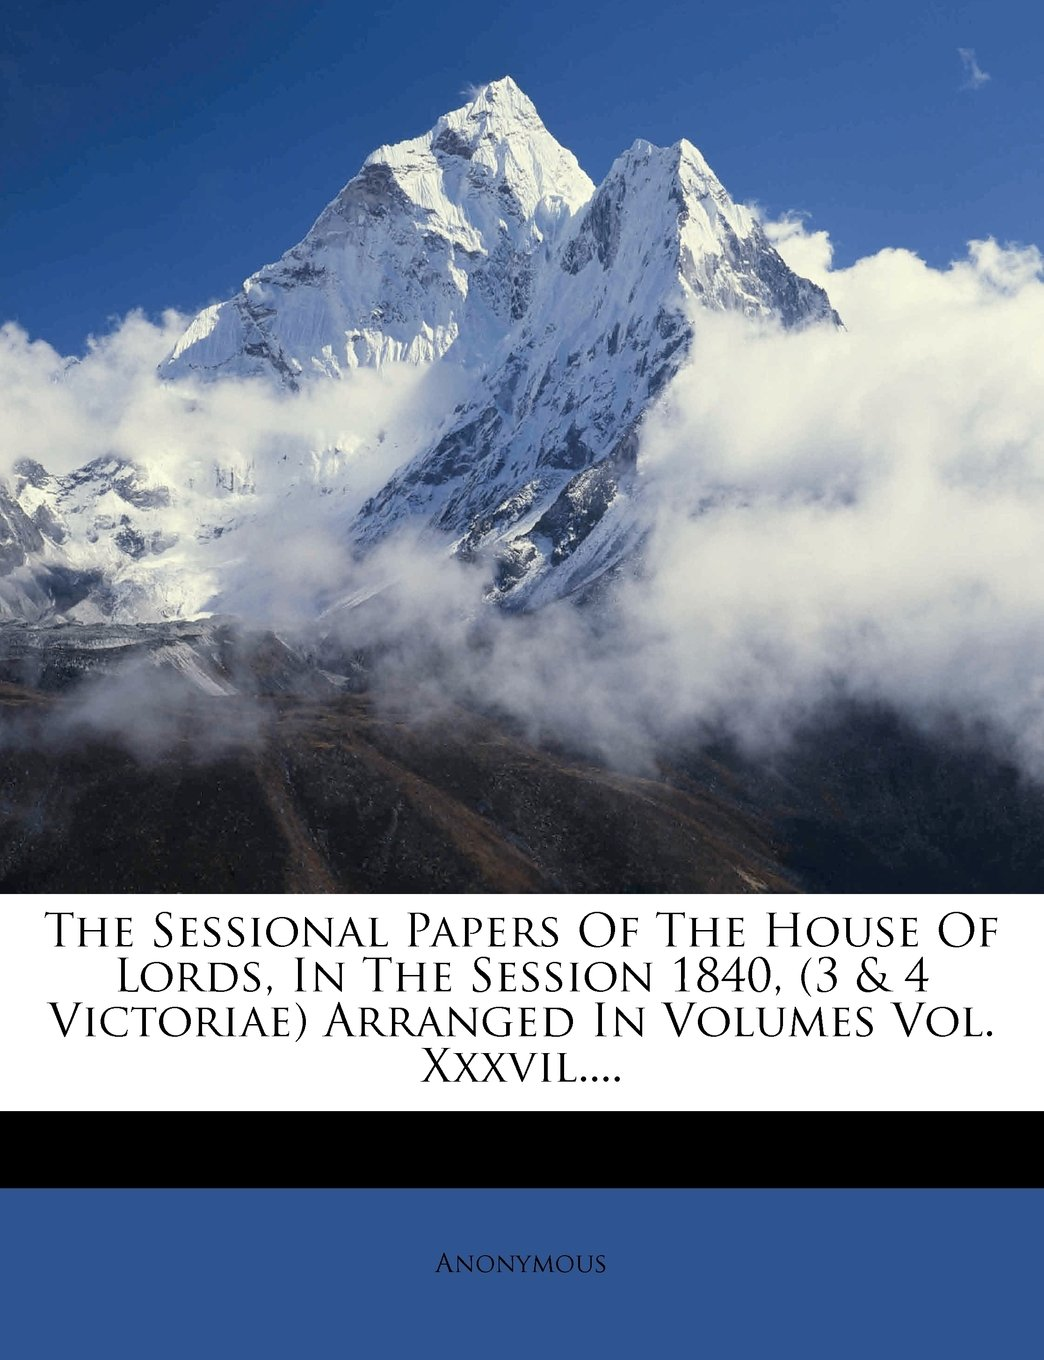 Download The Sessional Papers Of The House Of Lords, In The Session 1840, (3 & 4 Victoriae) Arranged In Volumes Vol. Xxxvil.... pdf epub